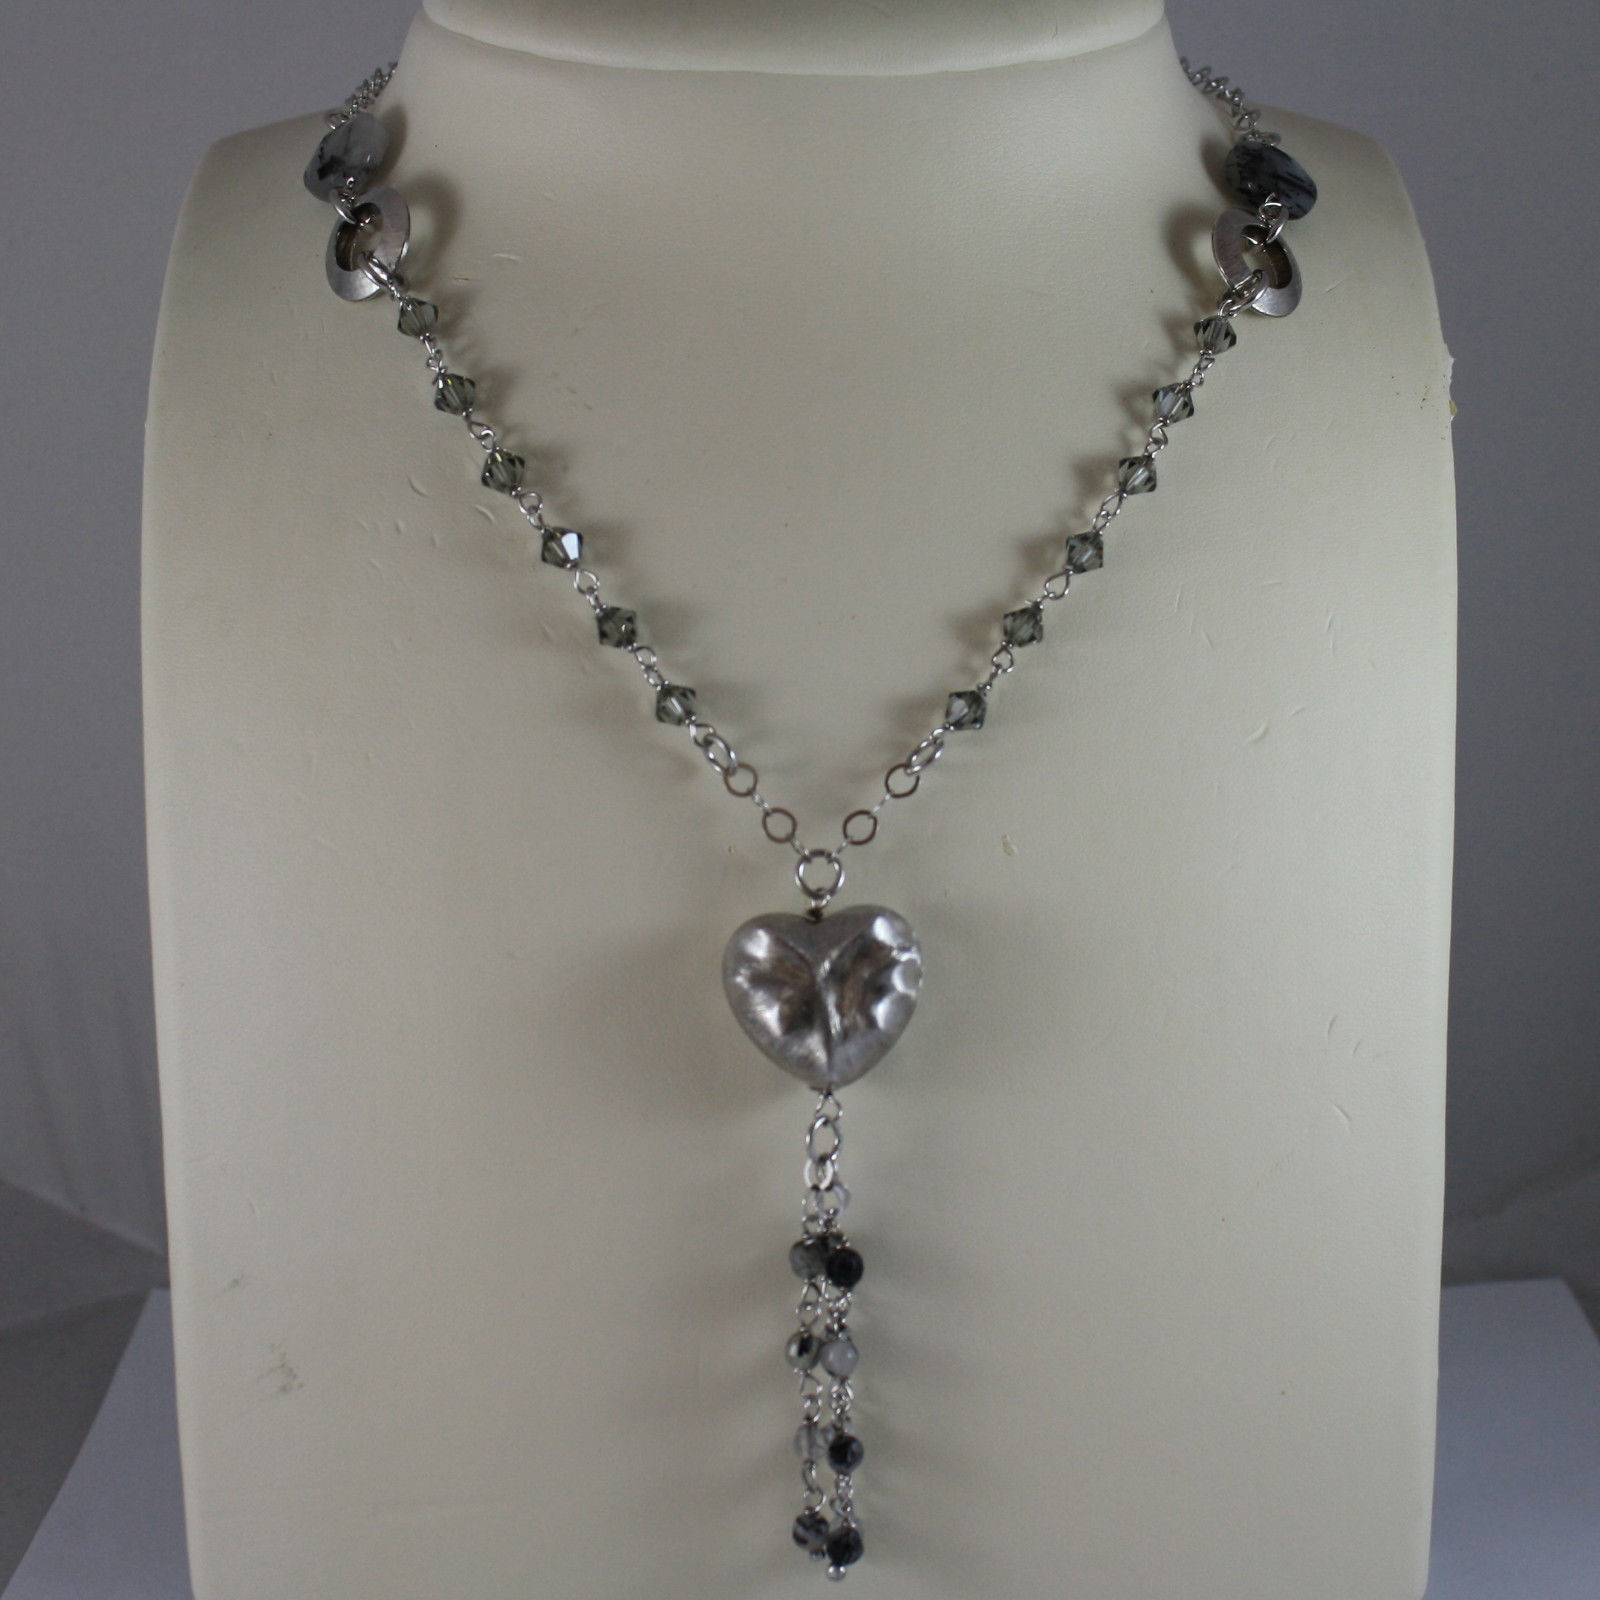 .925 SILVER RHODIUM NECKLACE WITH GRAY QUARTZ, GRAY CRYSTALS AND HEART PENDANT